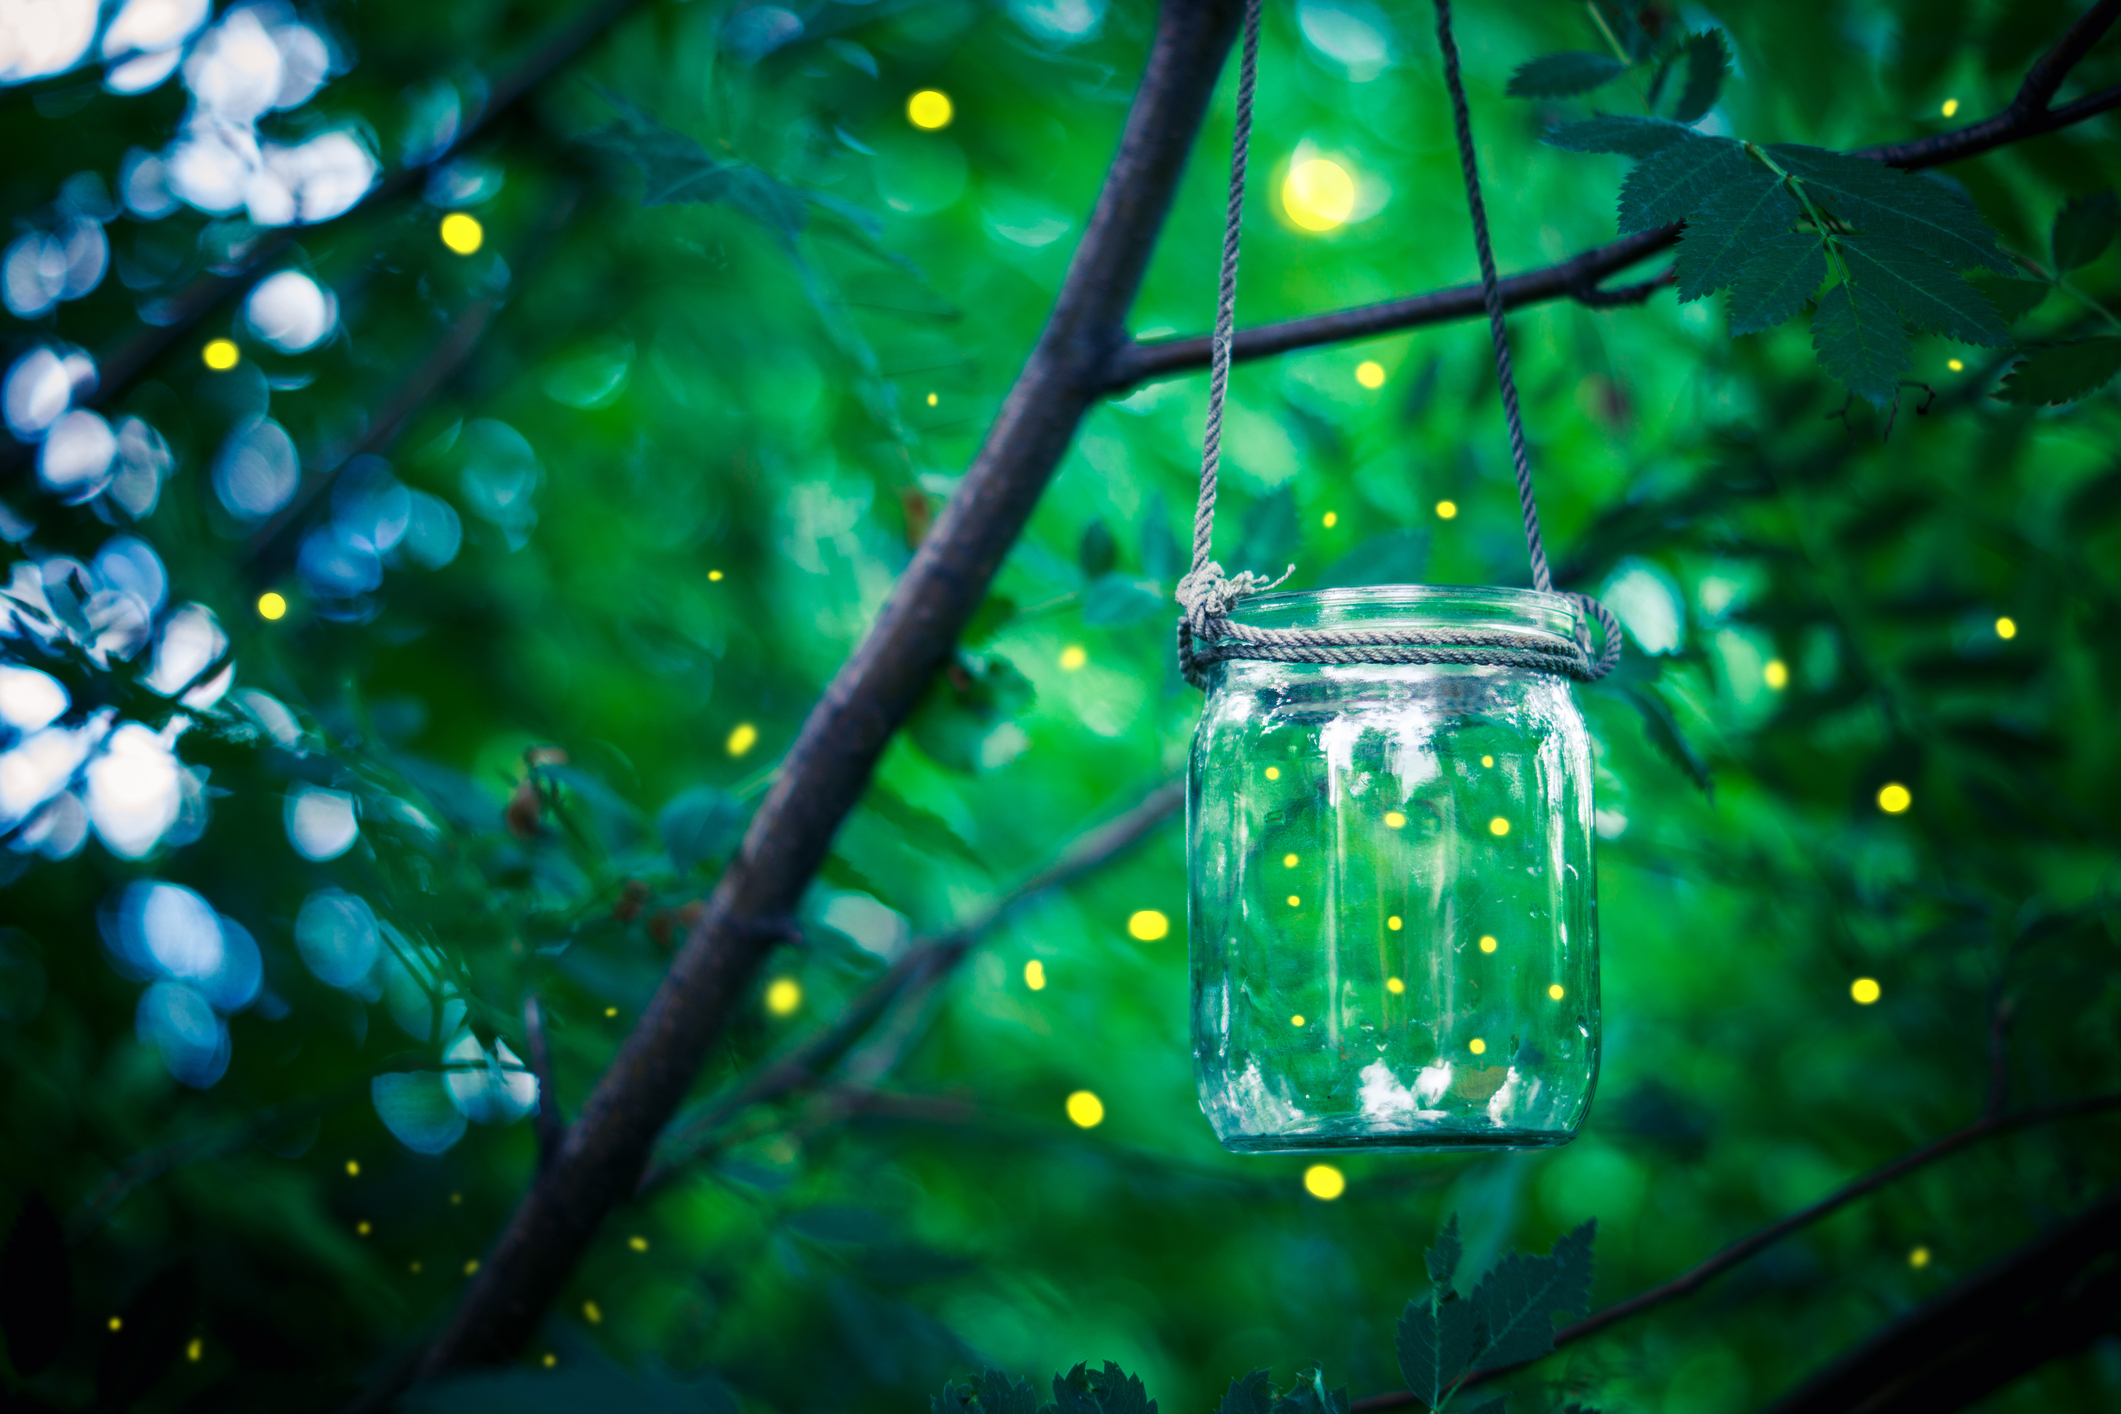 Photo by Mindstyle/iStock / Getty Images  For other amazing photos of fireflies/lightening bugs, check out this website!  http://www.fireflyexperience.org/photos/